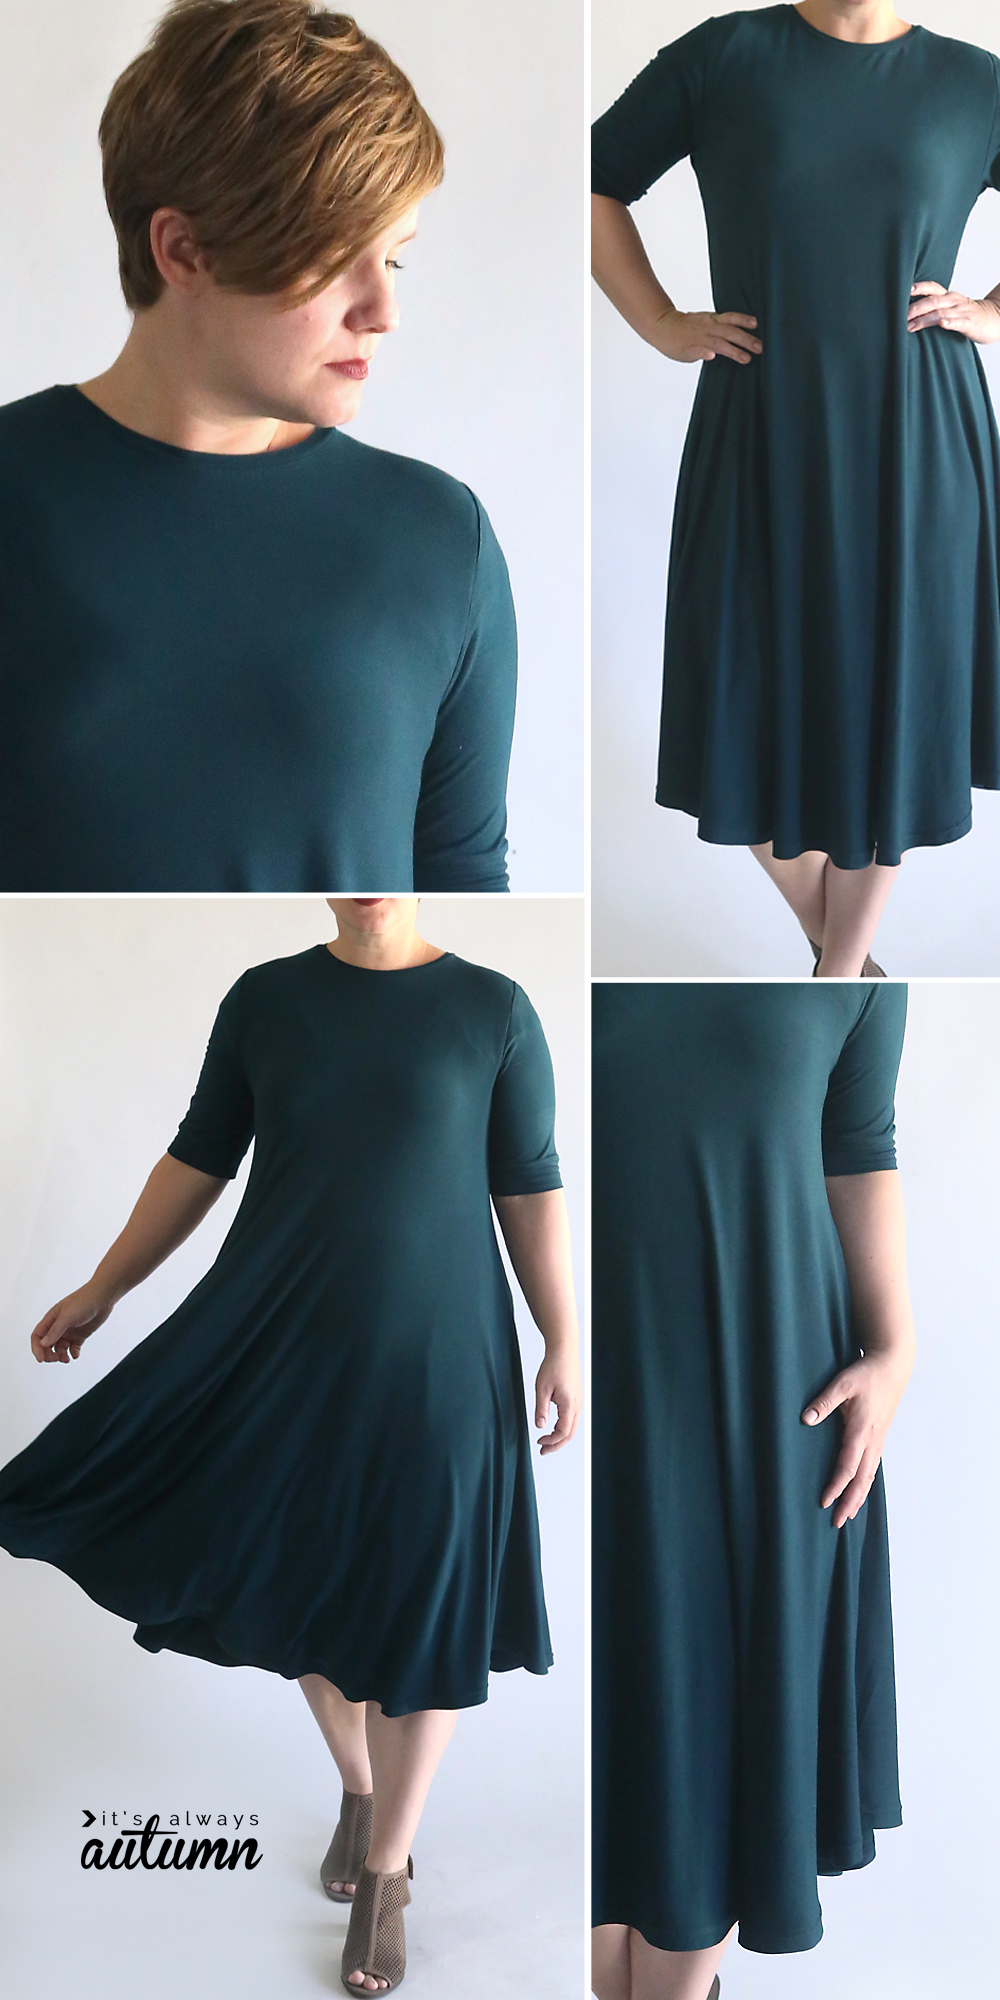 Easy swing dress pattern and sewing tutorial. How to sew a swing dress.